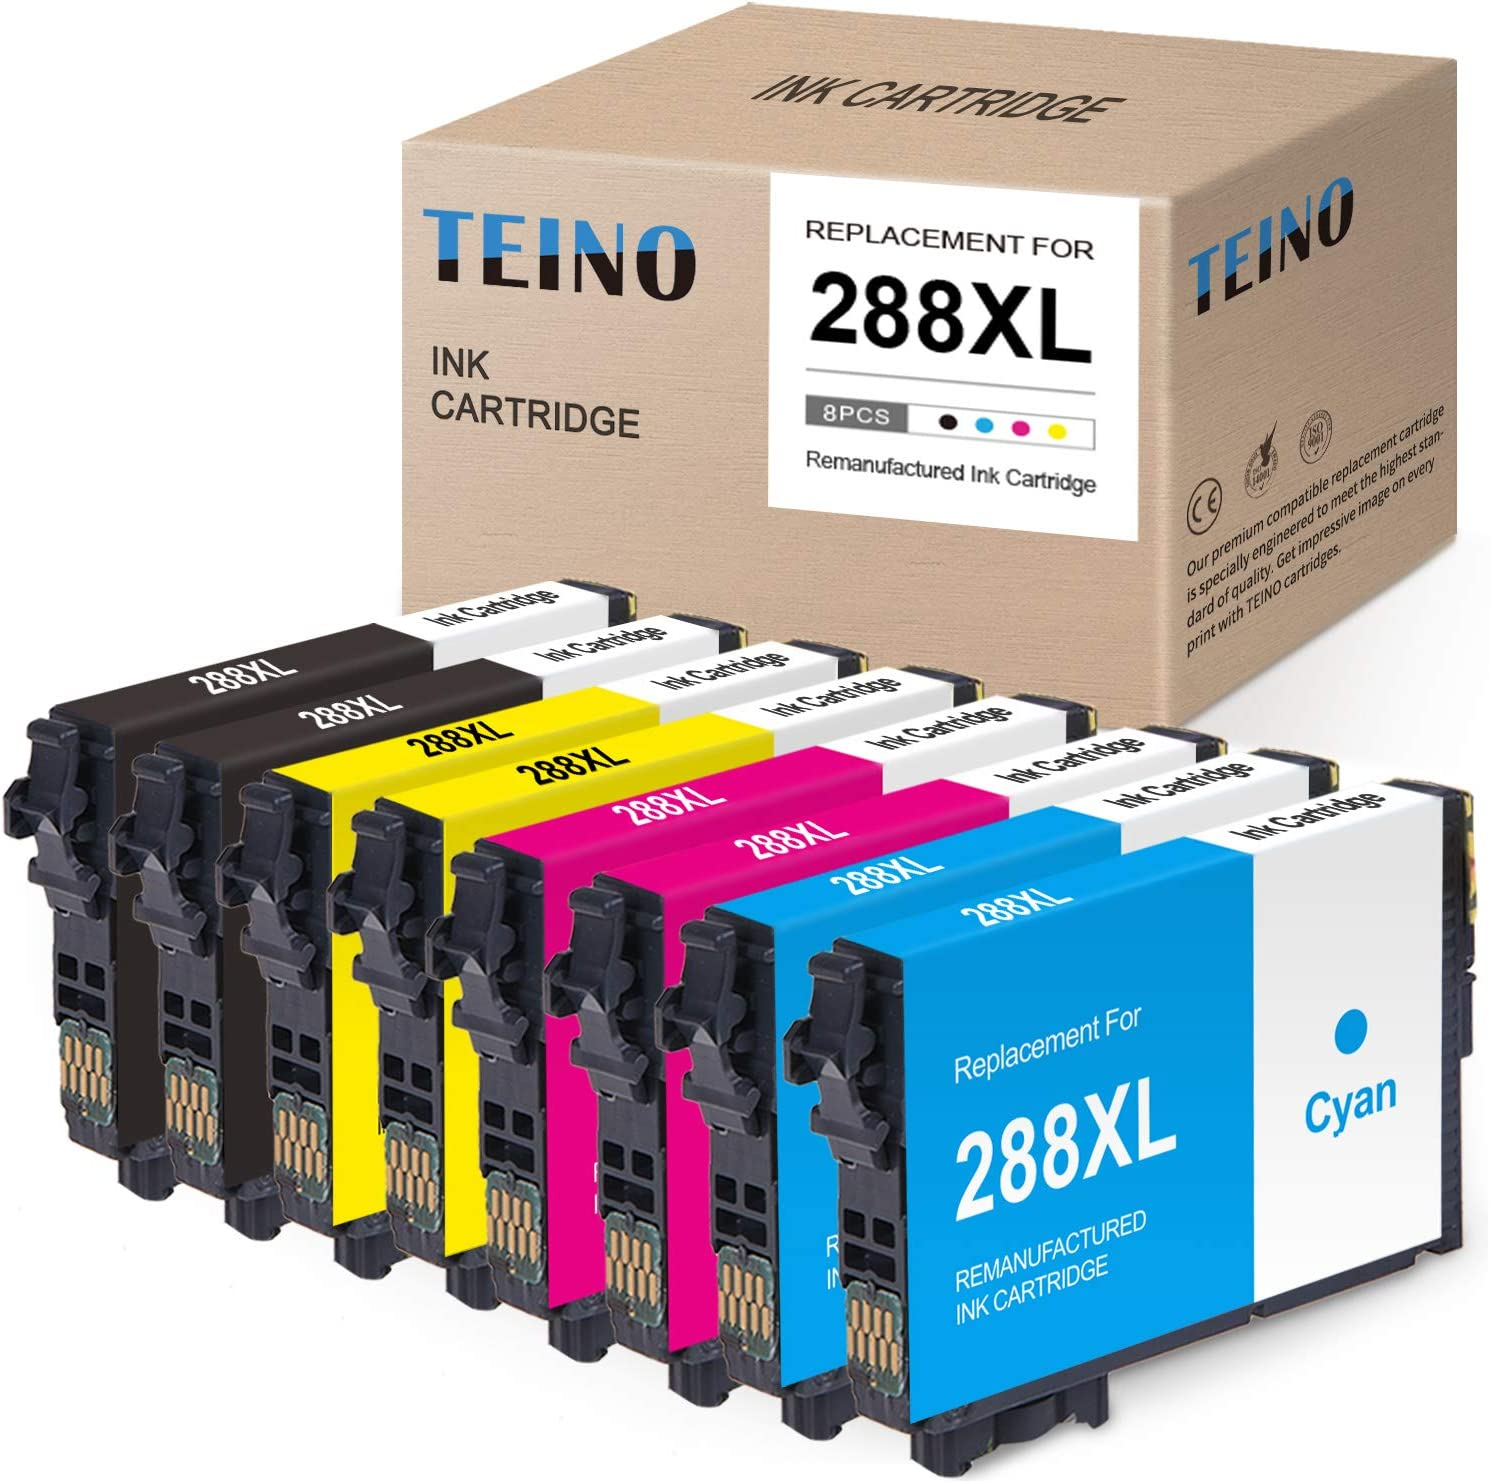 TEINO Remanufactured Ink Cartridges Replacement for Epson 288XL 288 XL T288XL use with Epson Expression Home XP-446 XP-430 XP-440 XP-330 XP-340 XP-434 (Black, Cyan, Magenta, Yellow, 8-Pack)